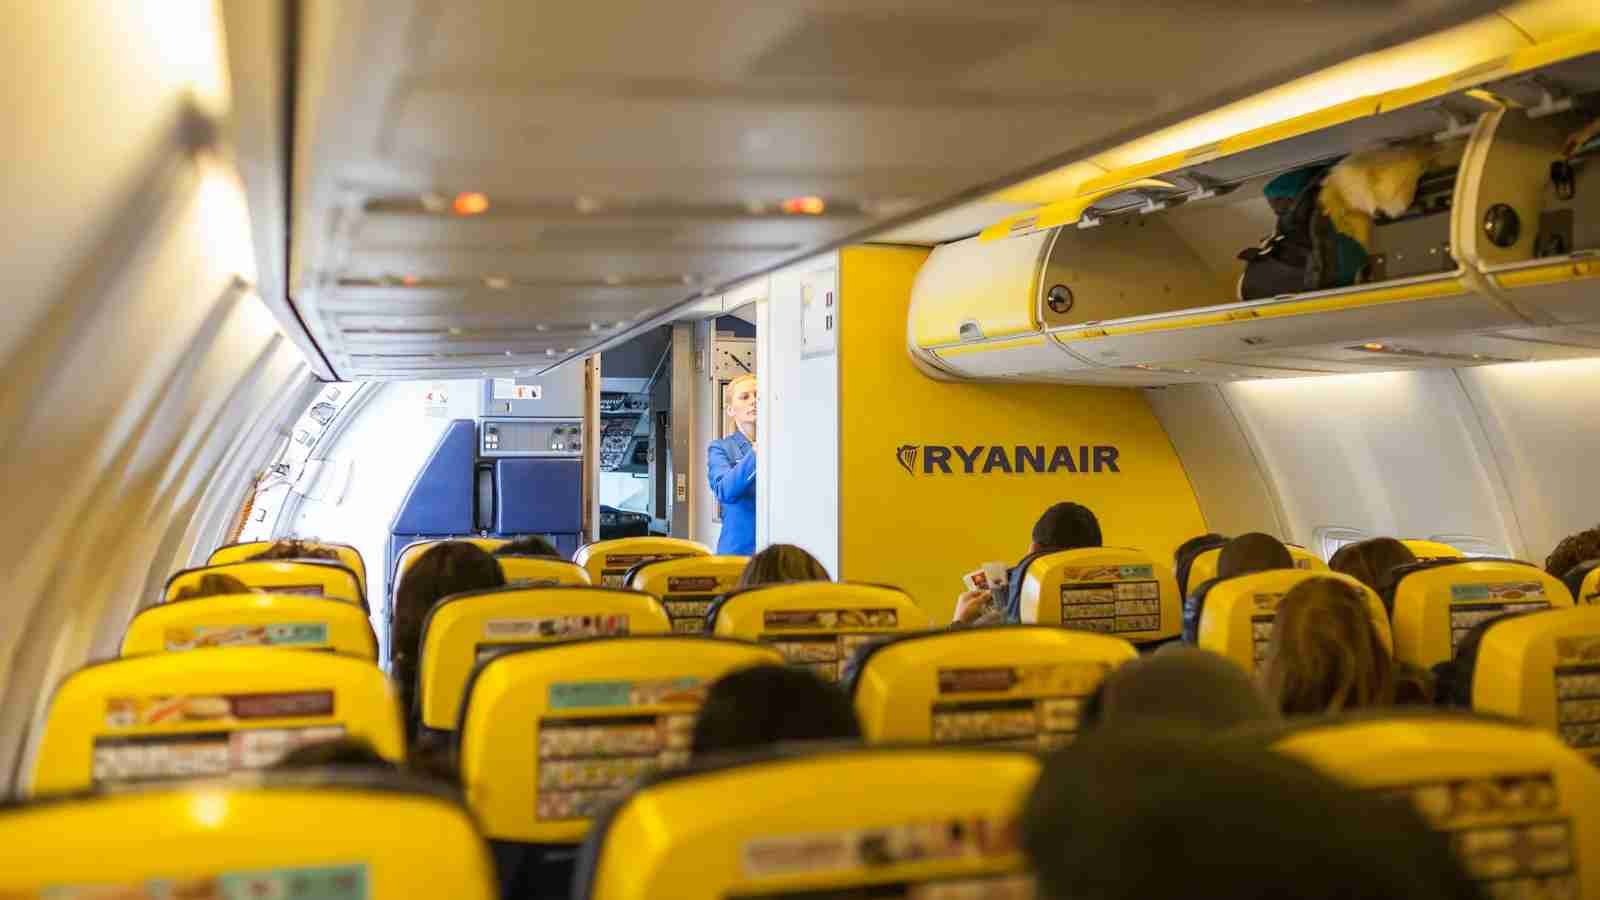 Pay attention to Ryanair